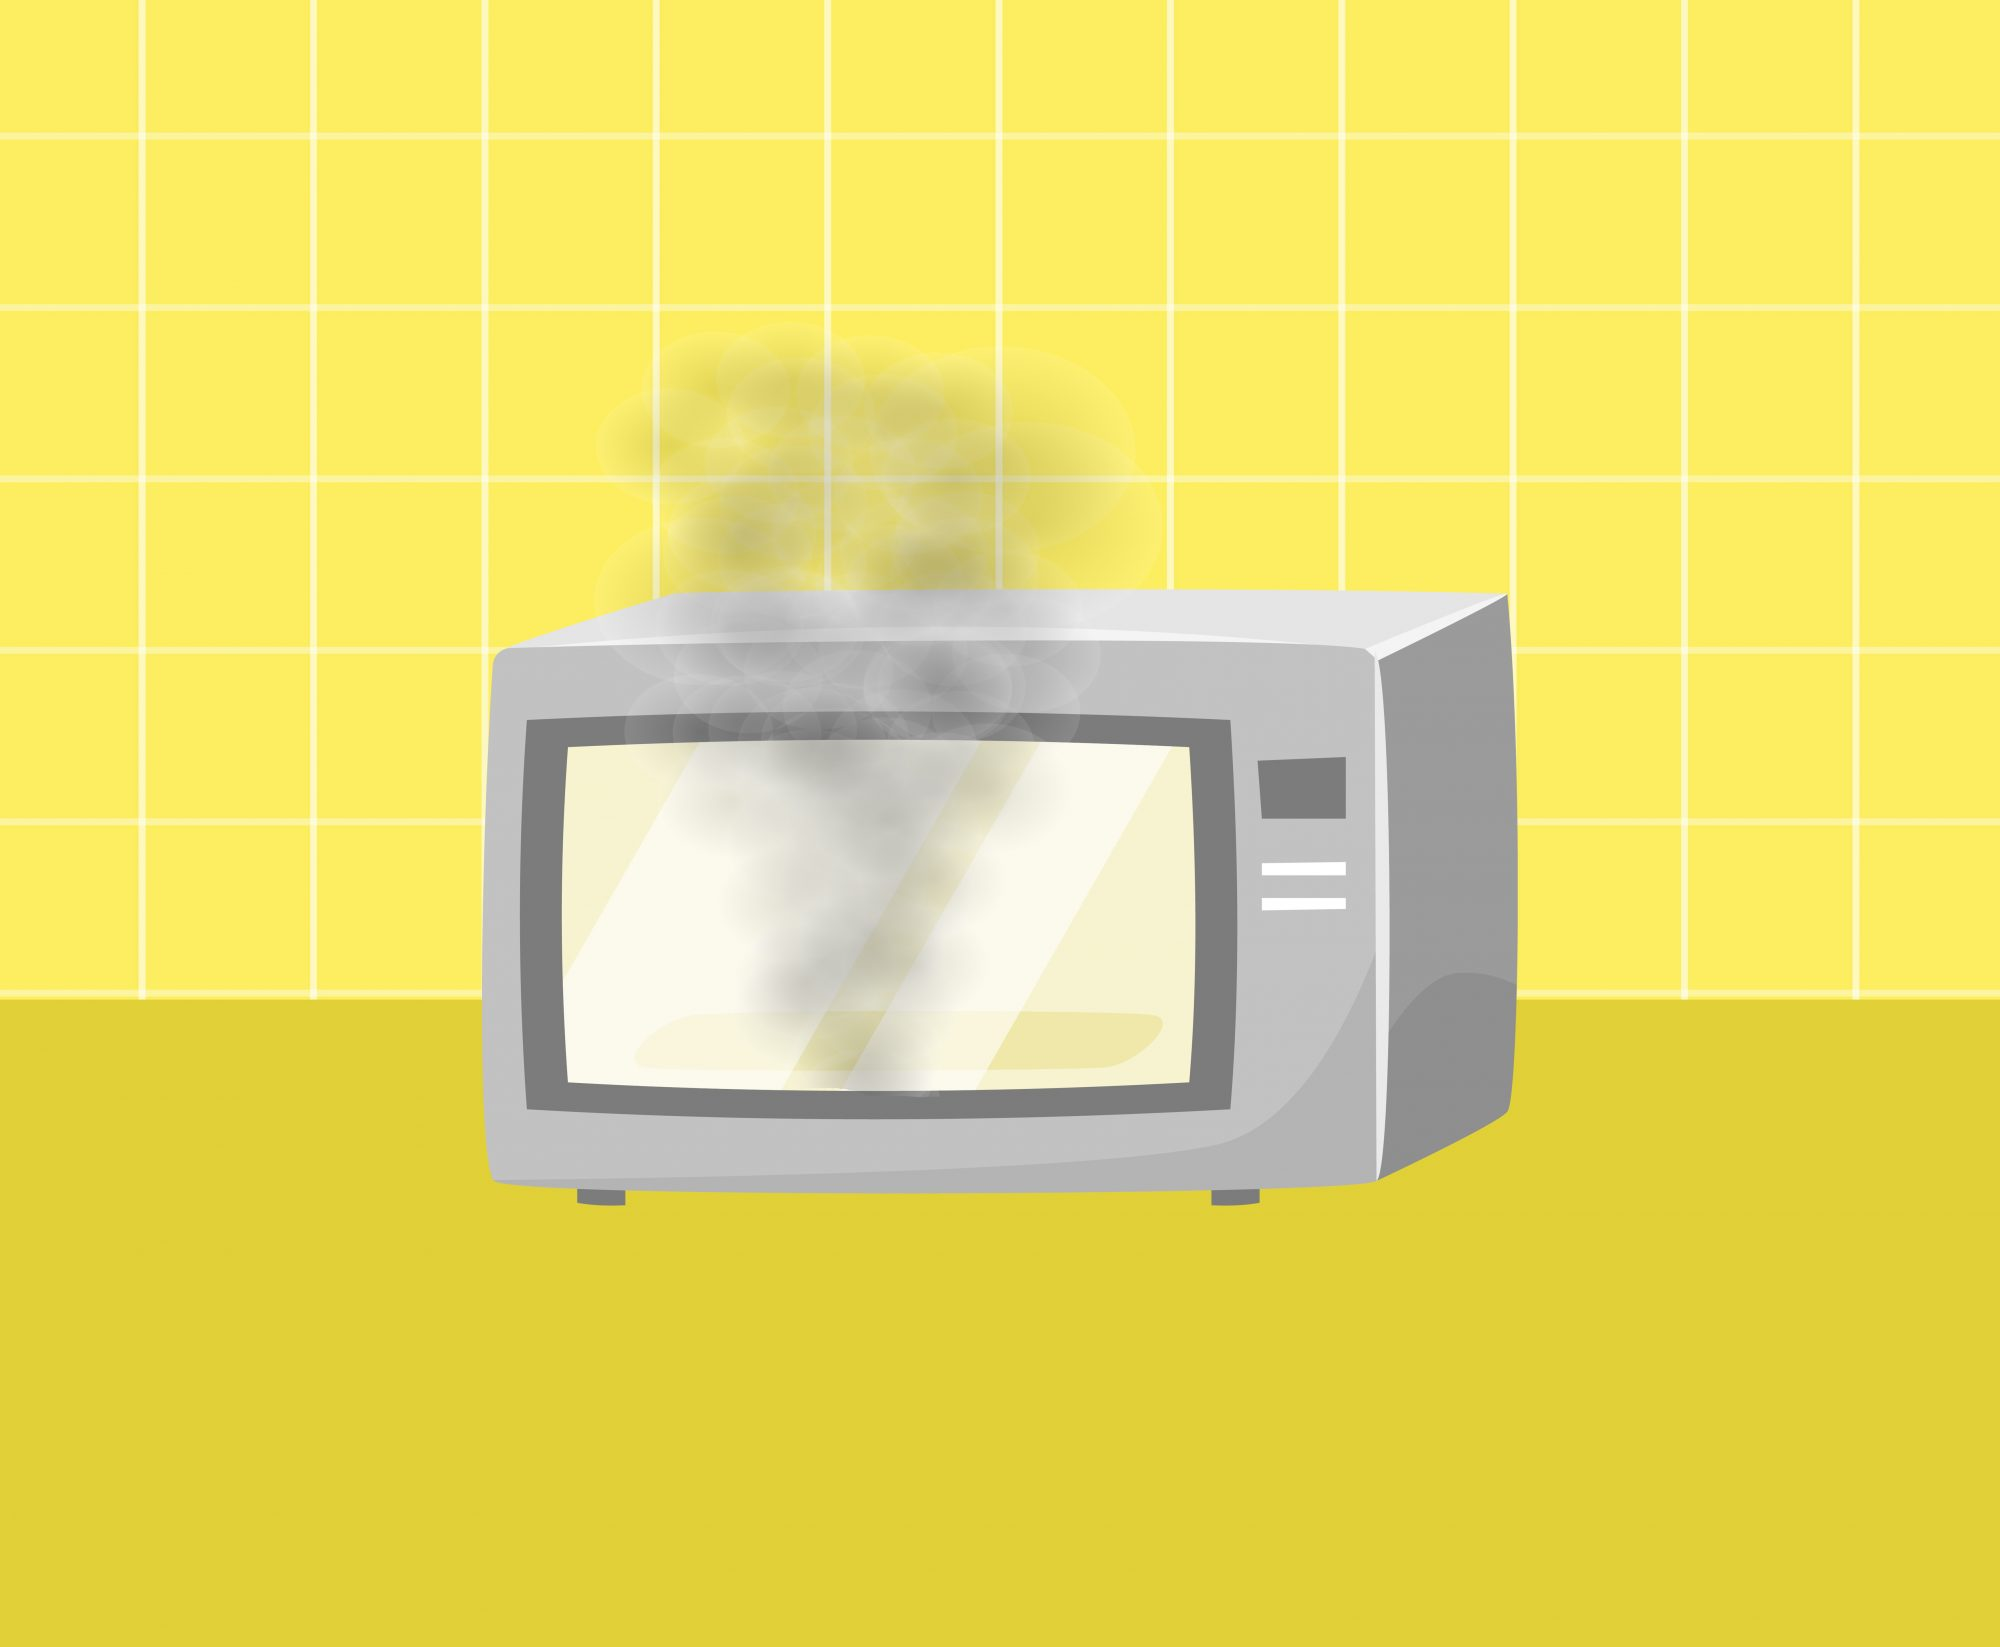 microwave-food-donts